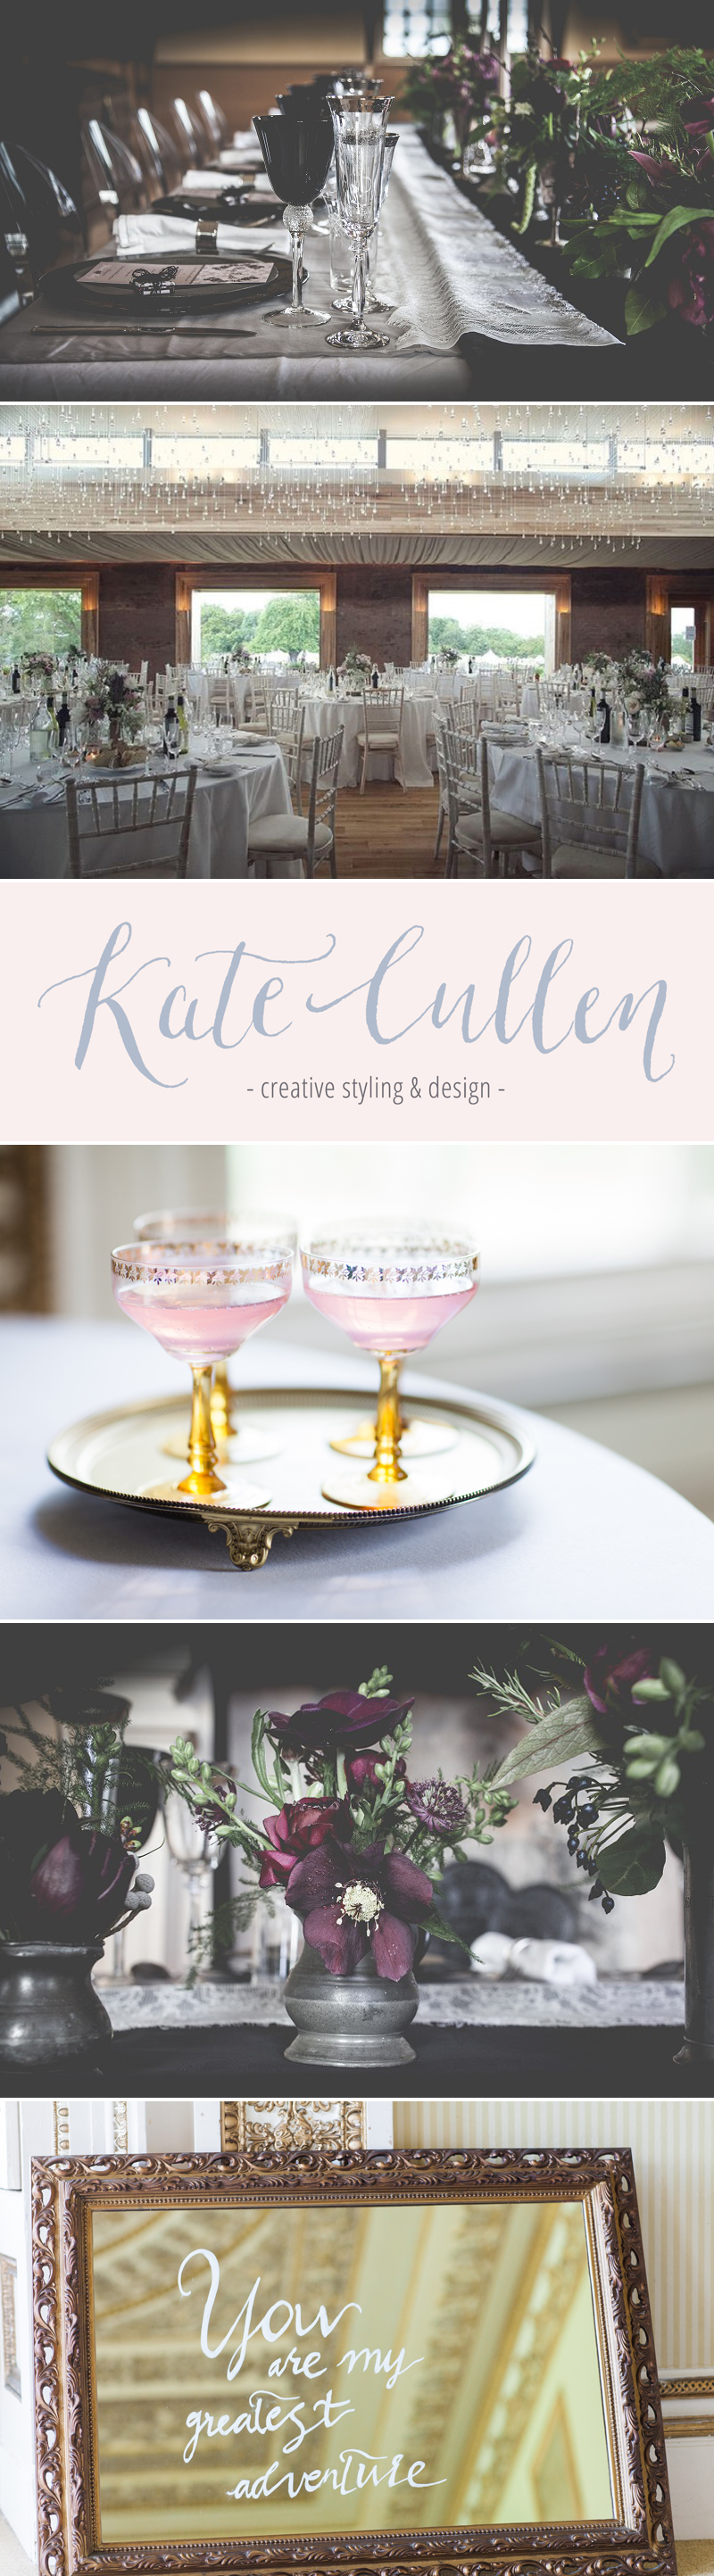 wedding-styling-and-design-south-west-kate-cullen-coco-wedding-venues-loved-by-coco